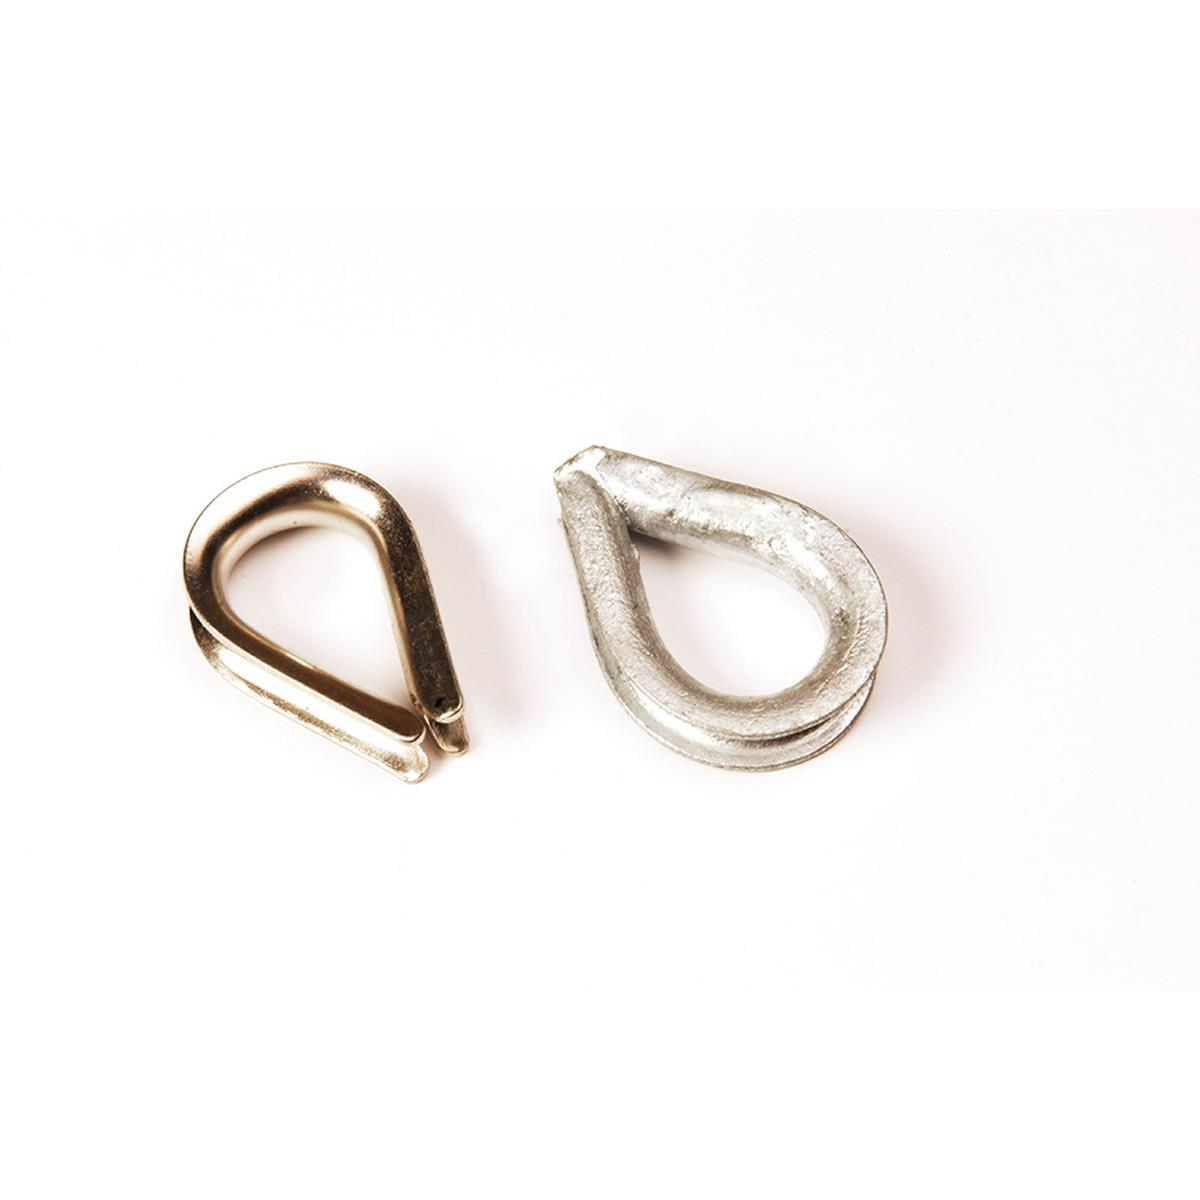 5mm Stainless Steel Rope Thimble